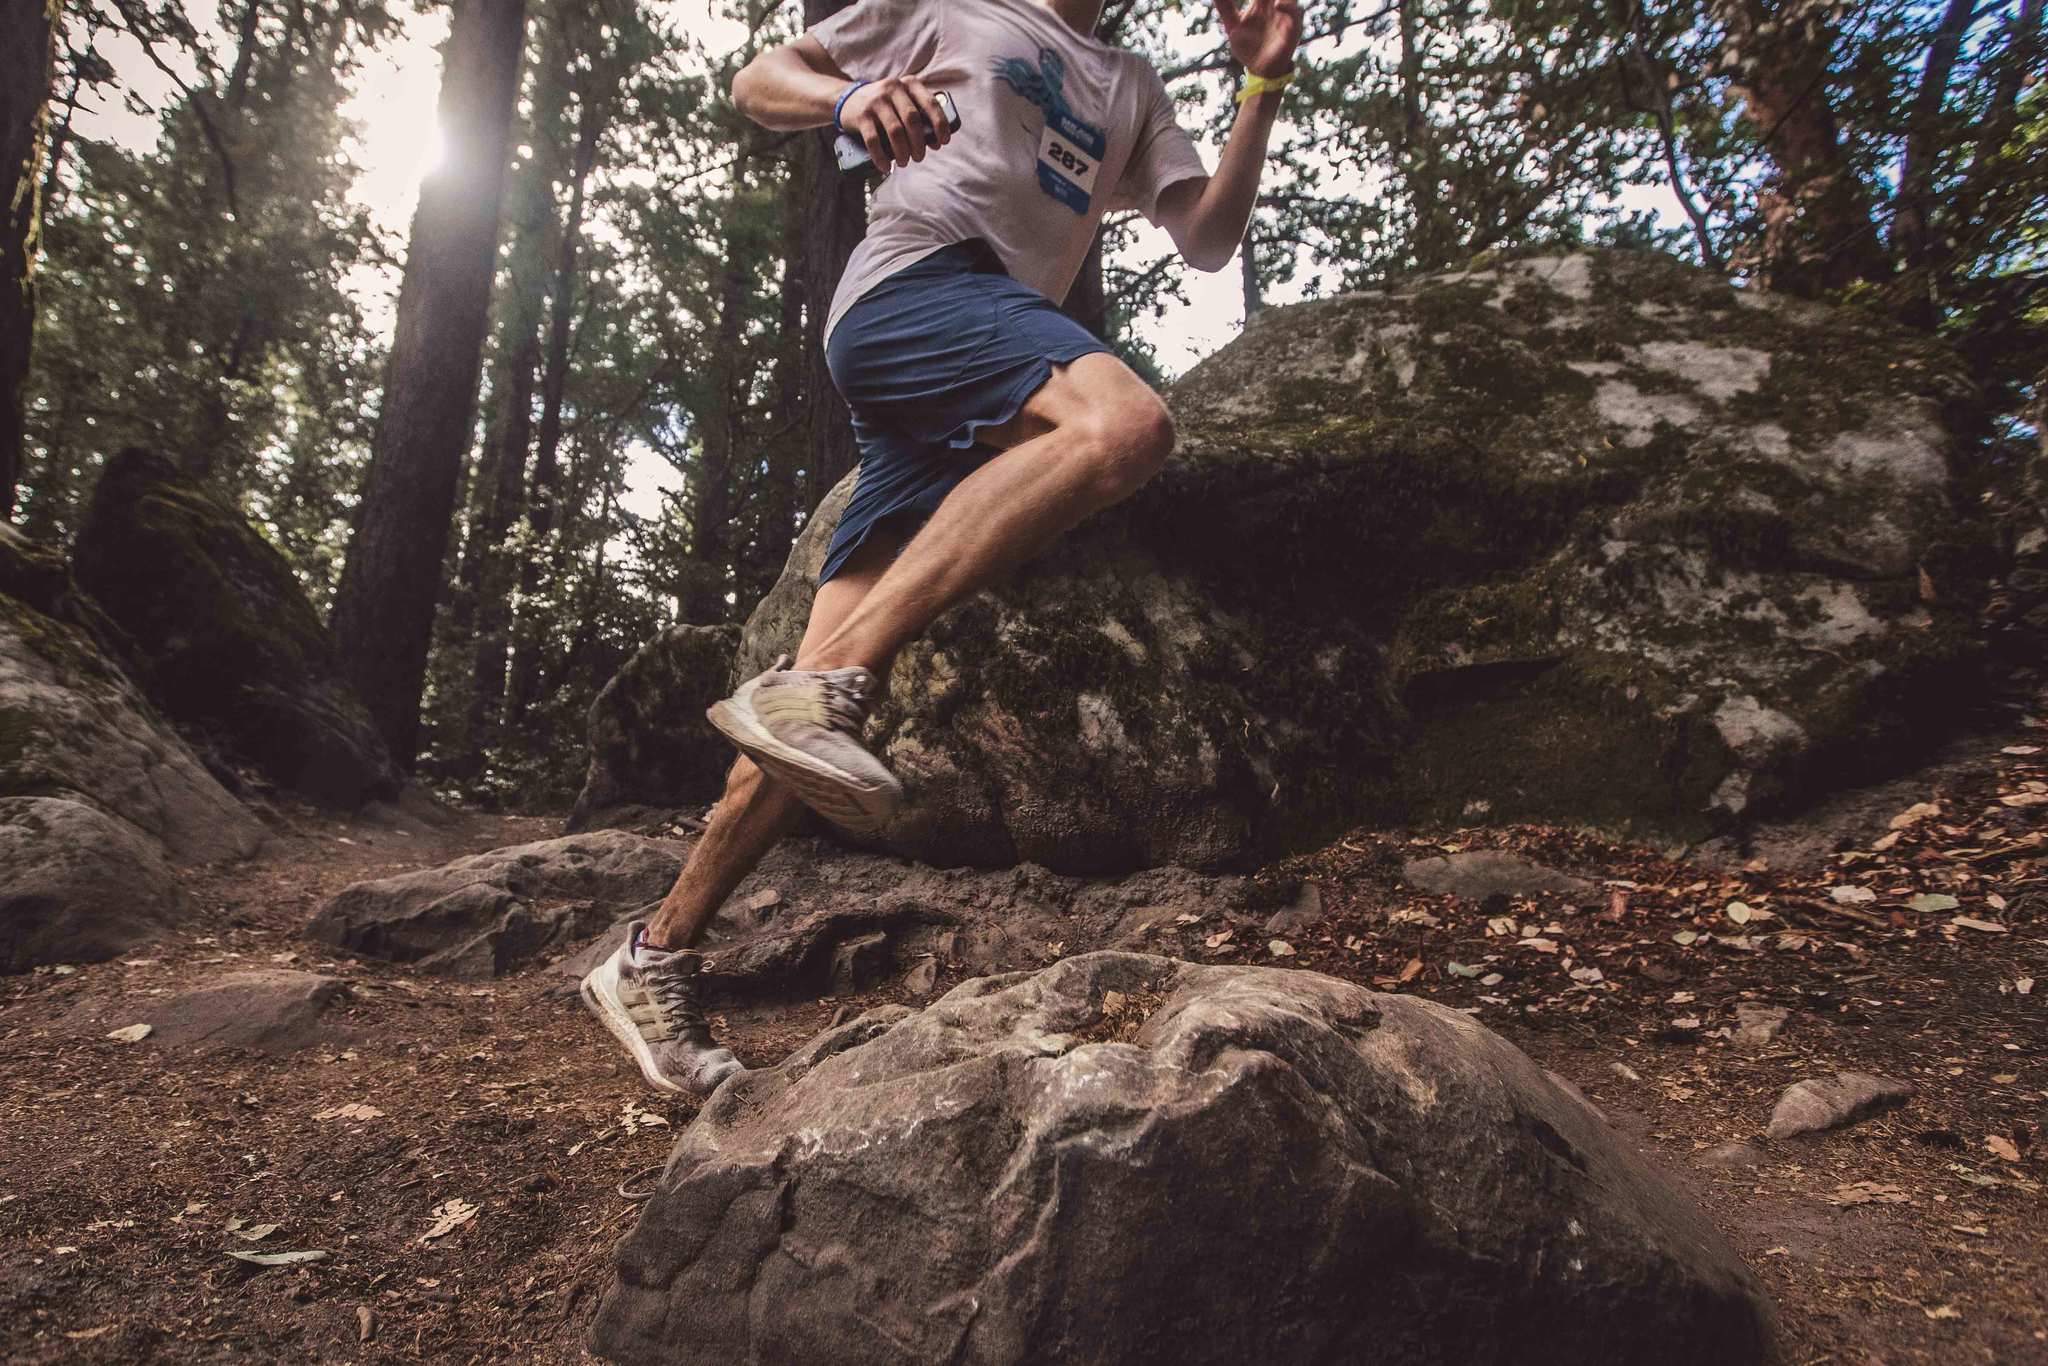 A Spartan Trail racer is able to race on the trail over rough terrain after preparing with exercises for IT band issues.